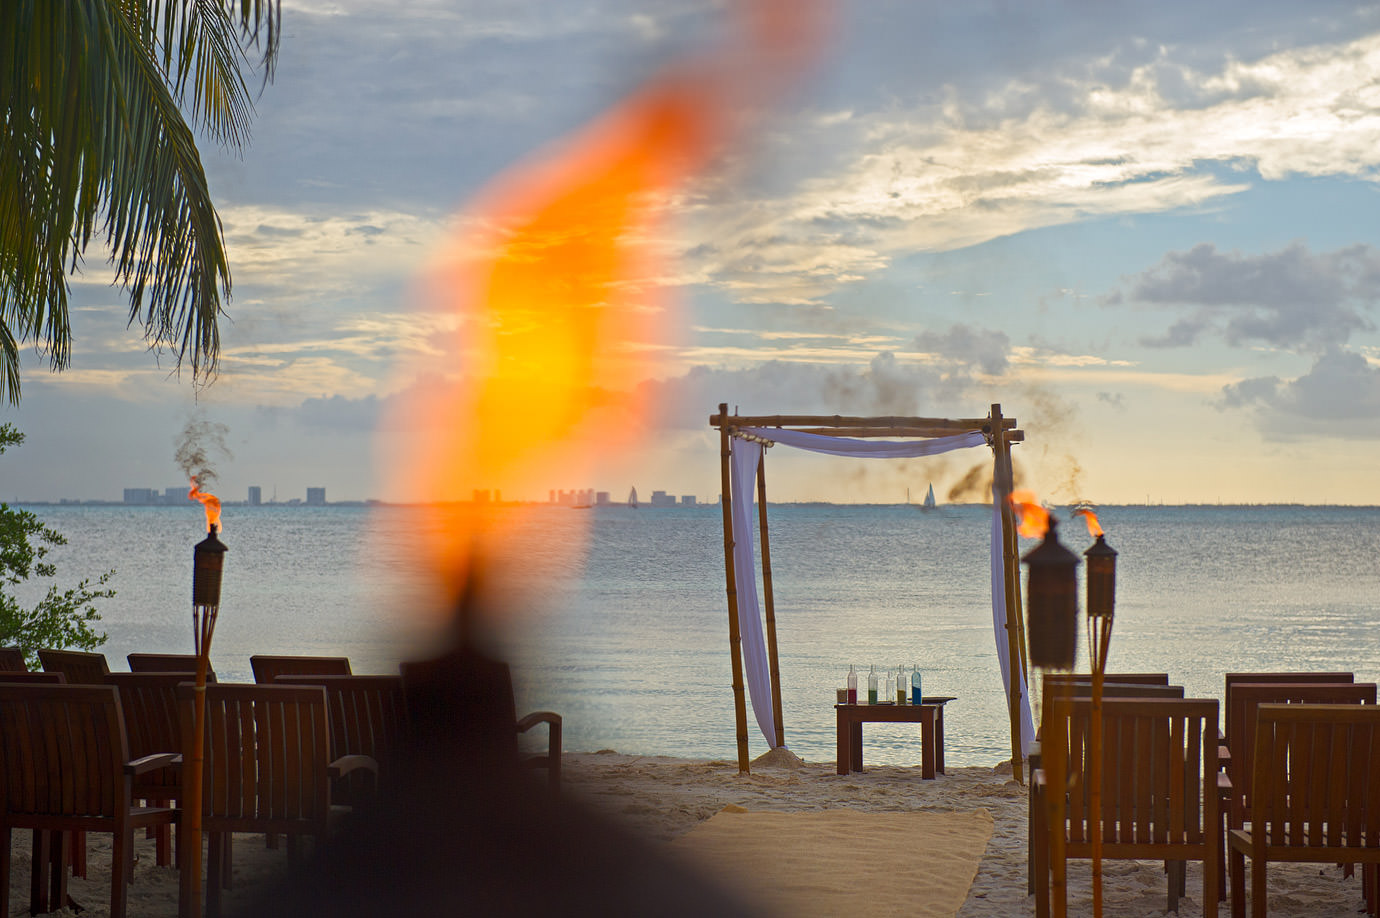 isla mujeres wedding photographers, destination wedding photography, jeff cooke photography, sunhorse weddings, zama beach club, Privilege Aluxes, cancun mexico weddings, sunset